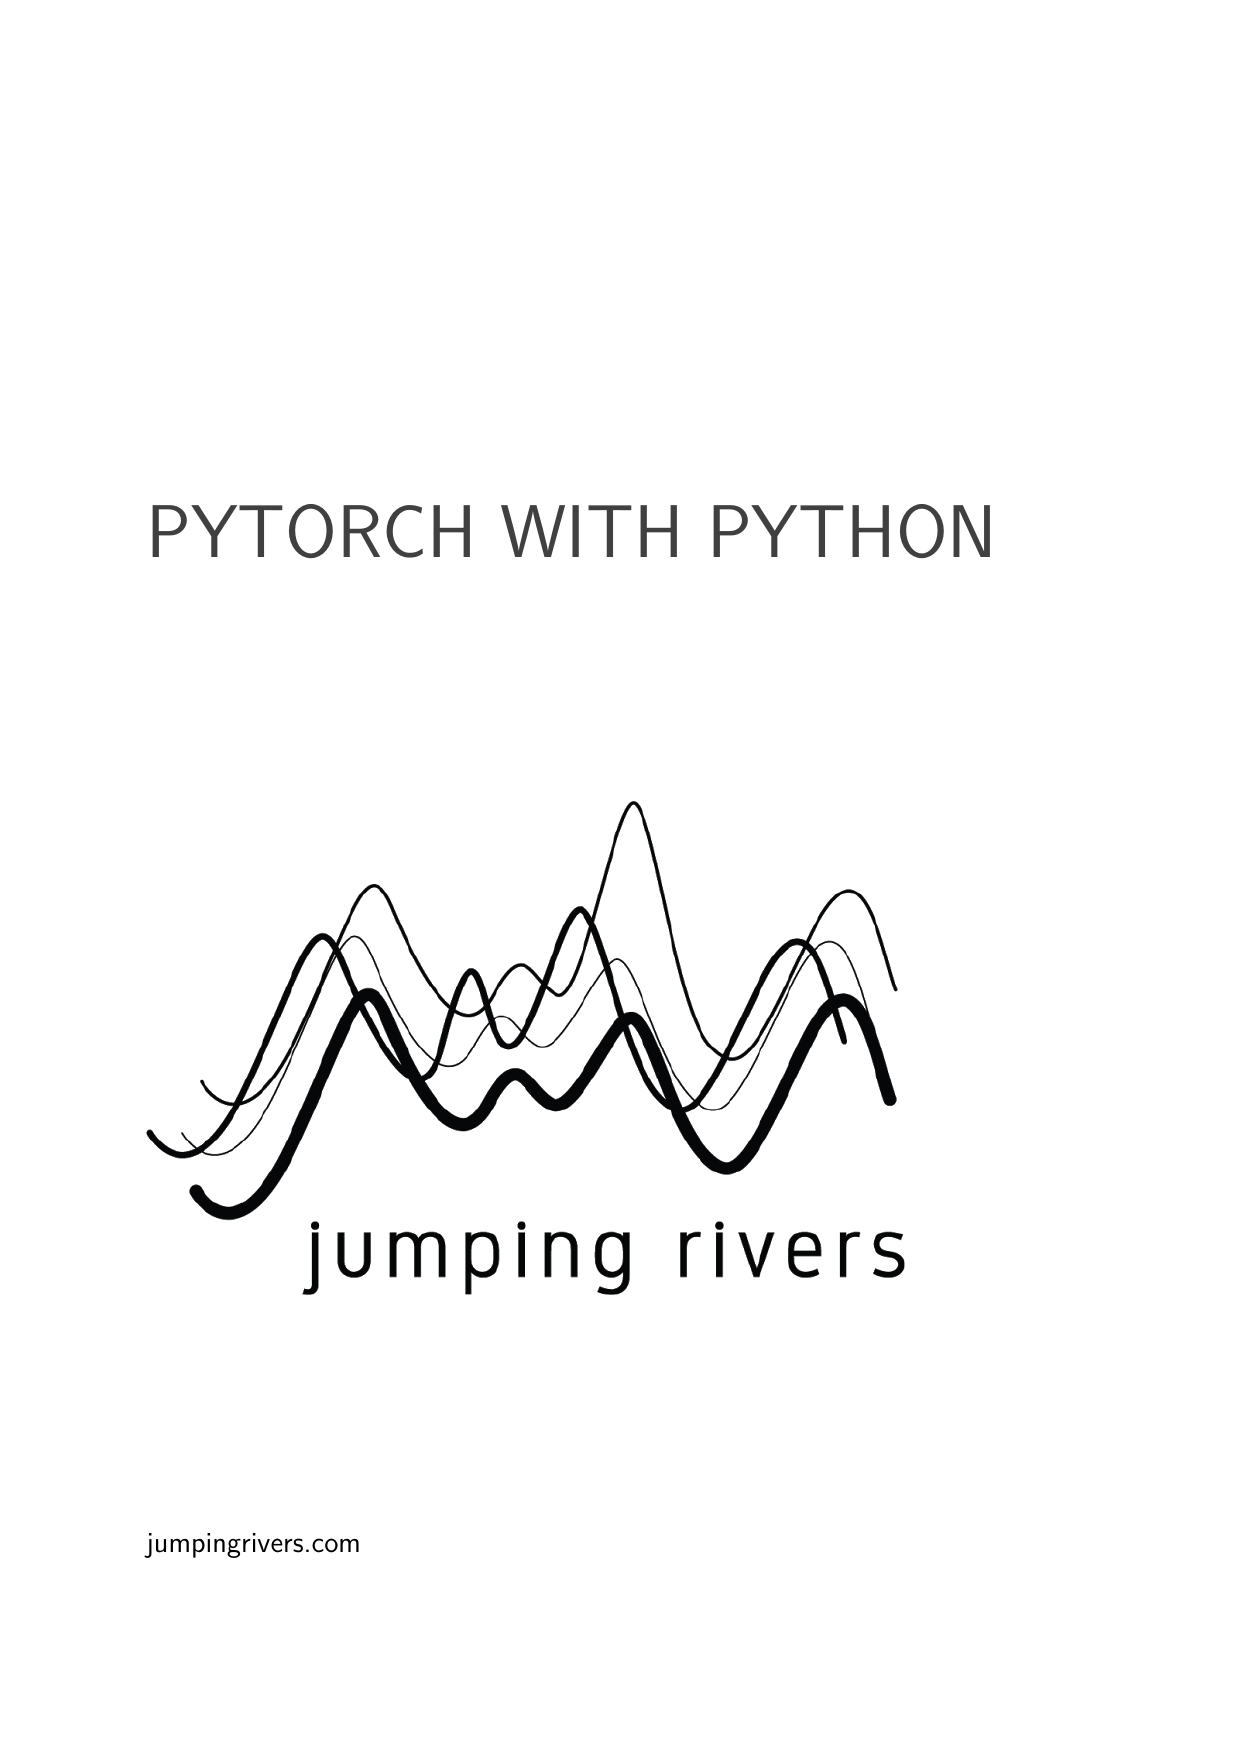 Example course material for 'PyTorch with Python